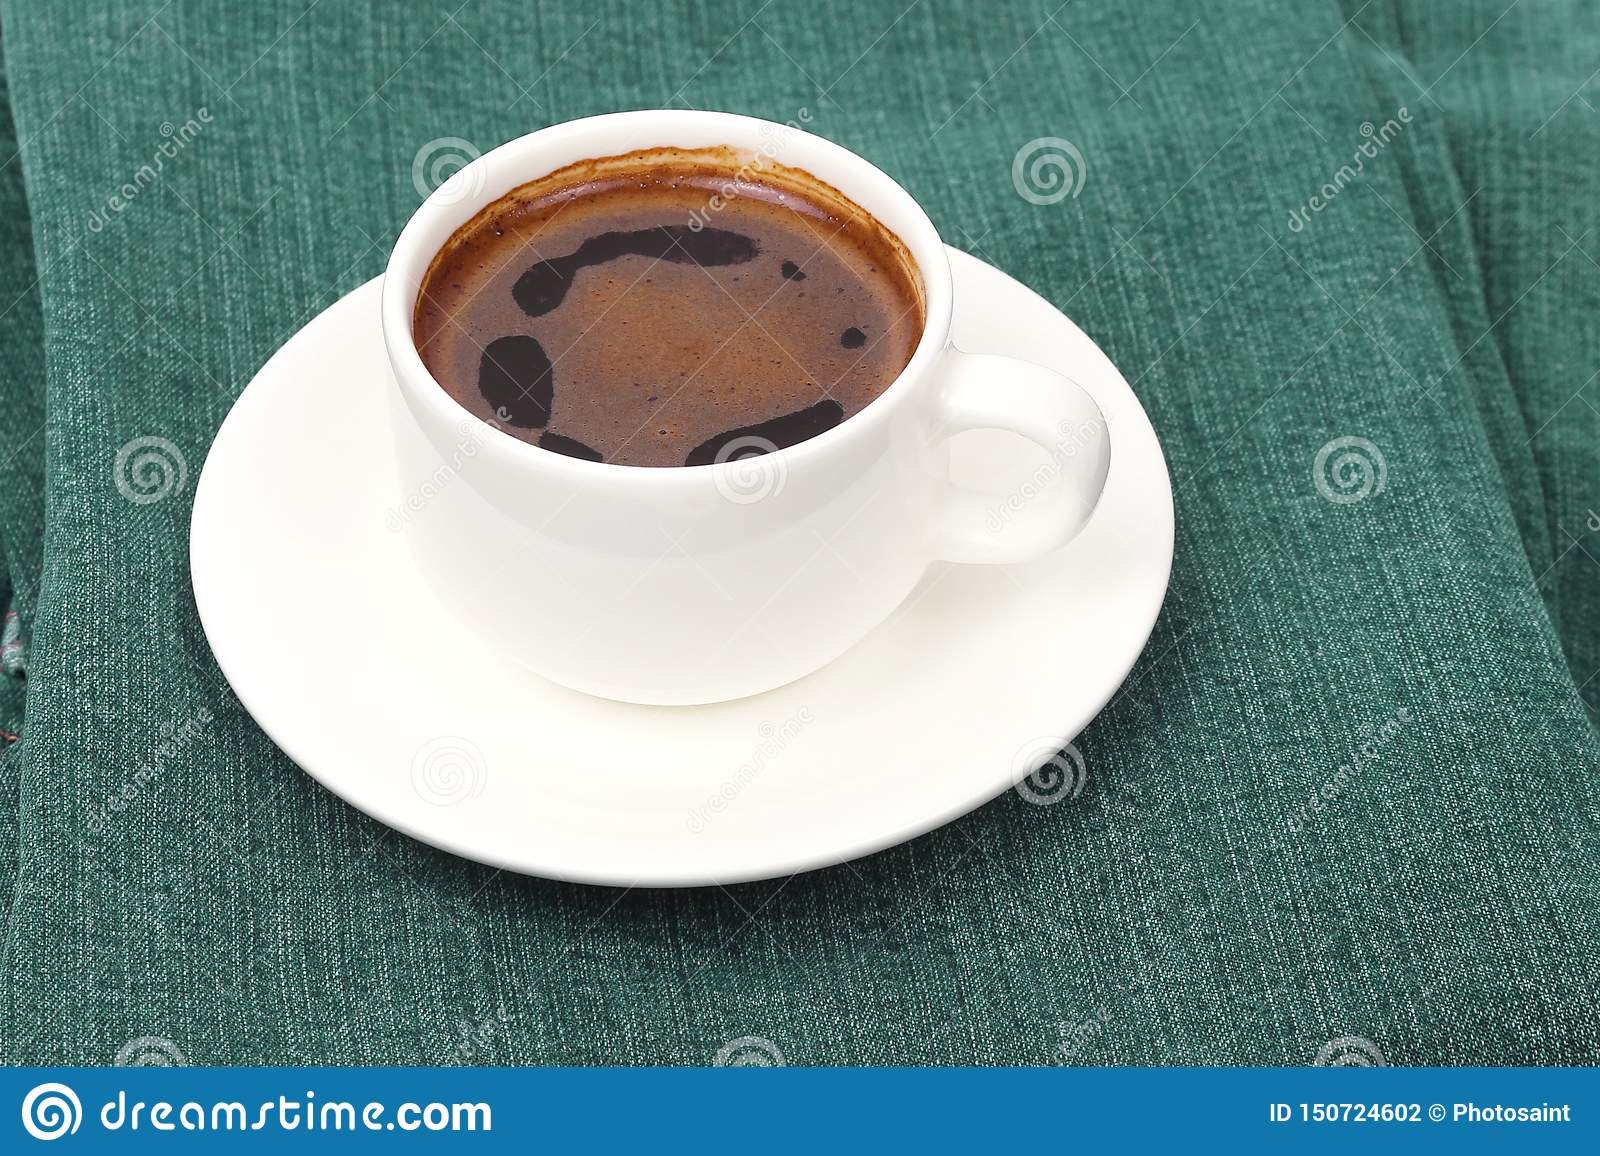 White Cup of black coffee rests on denim pants